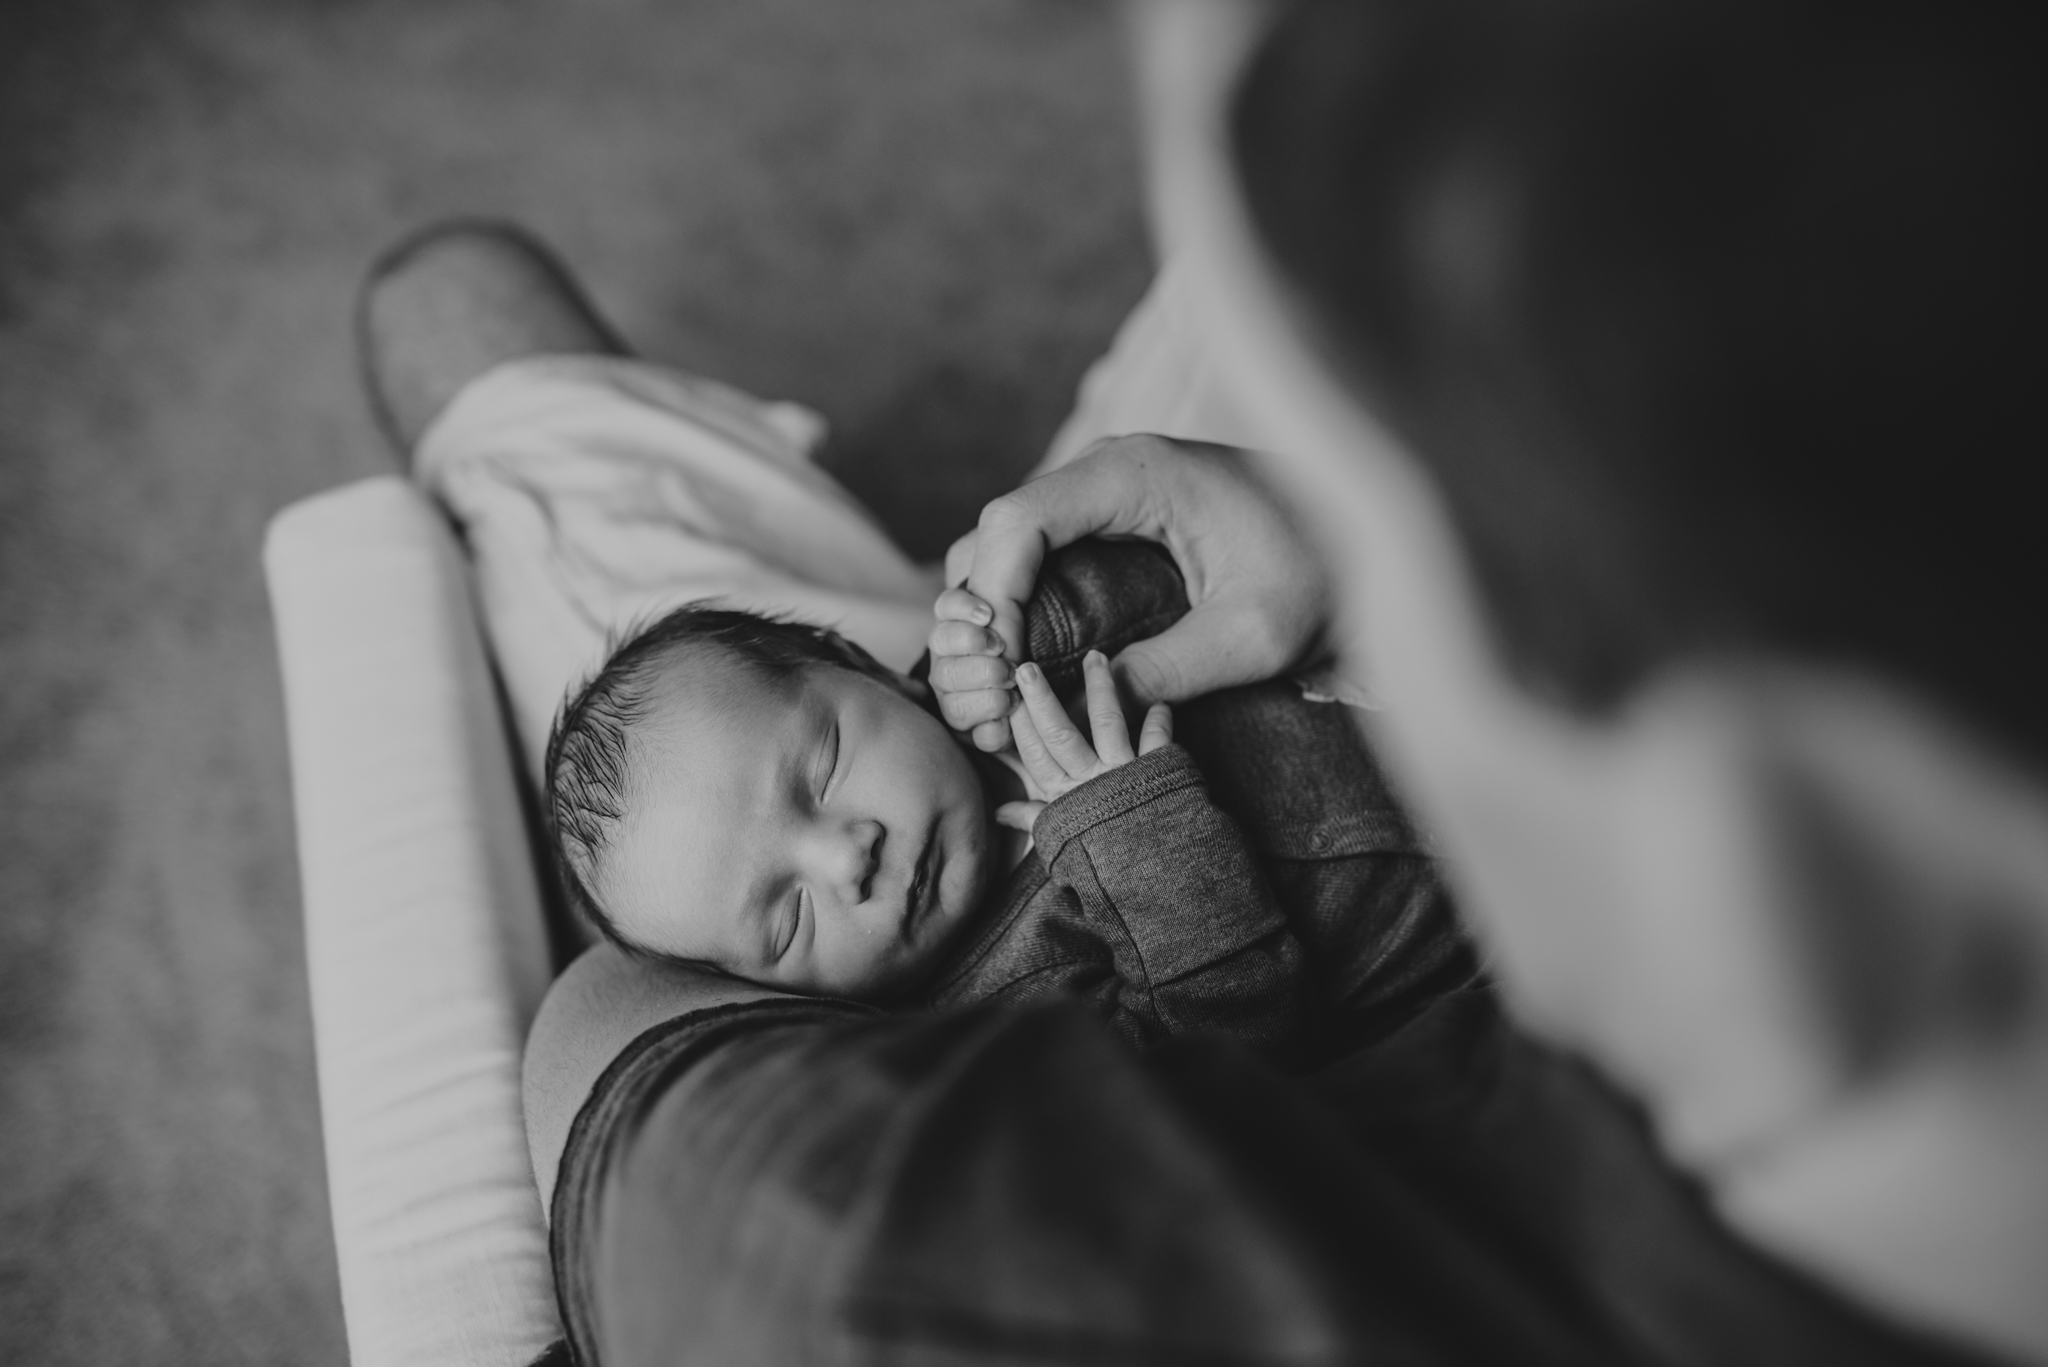 The new Dad holds his newborn son's hand in his nursery in Wake Forest, a black and white image by Rose Trail Images.